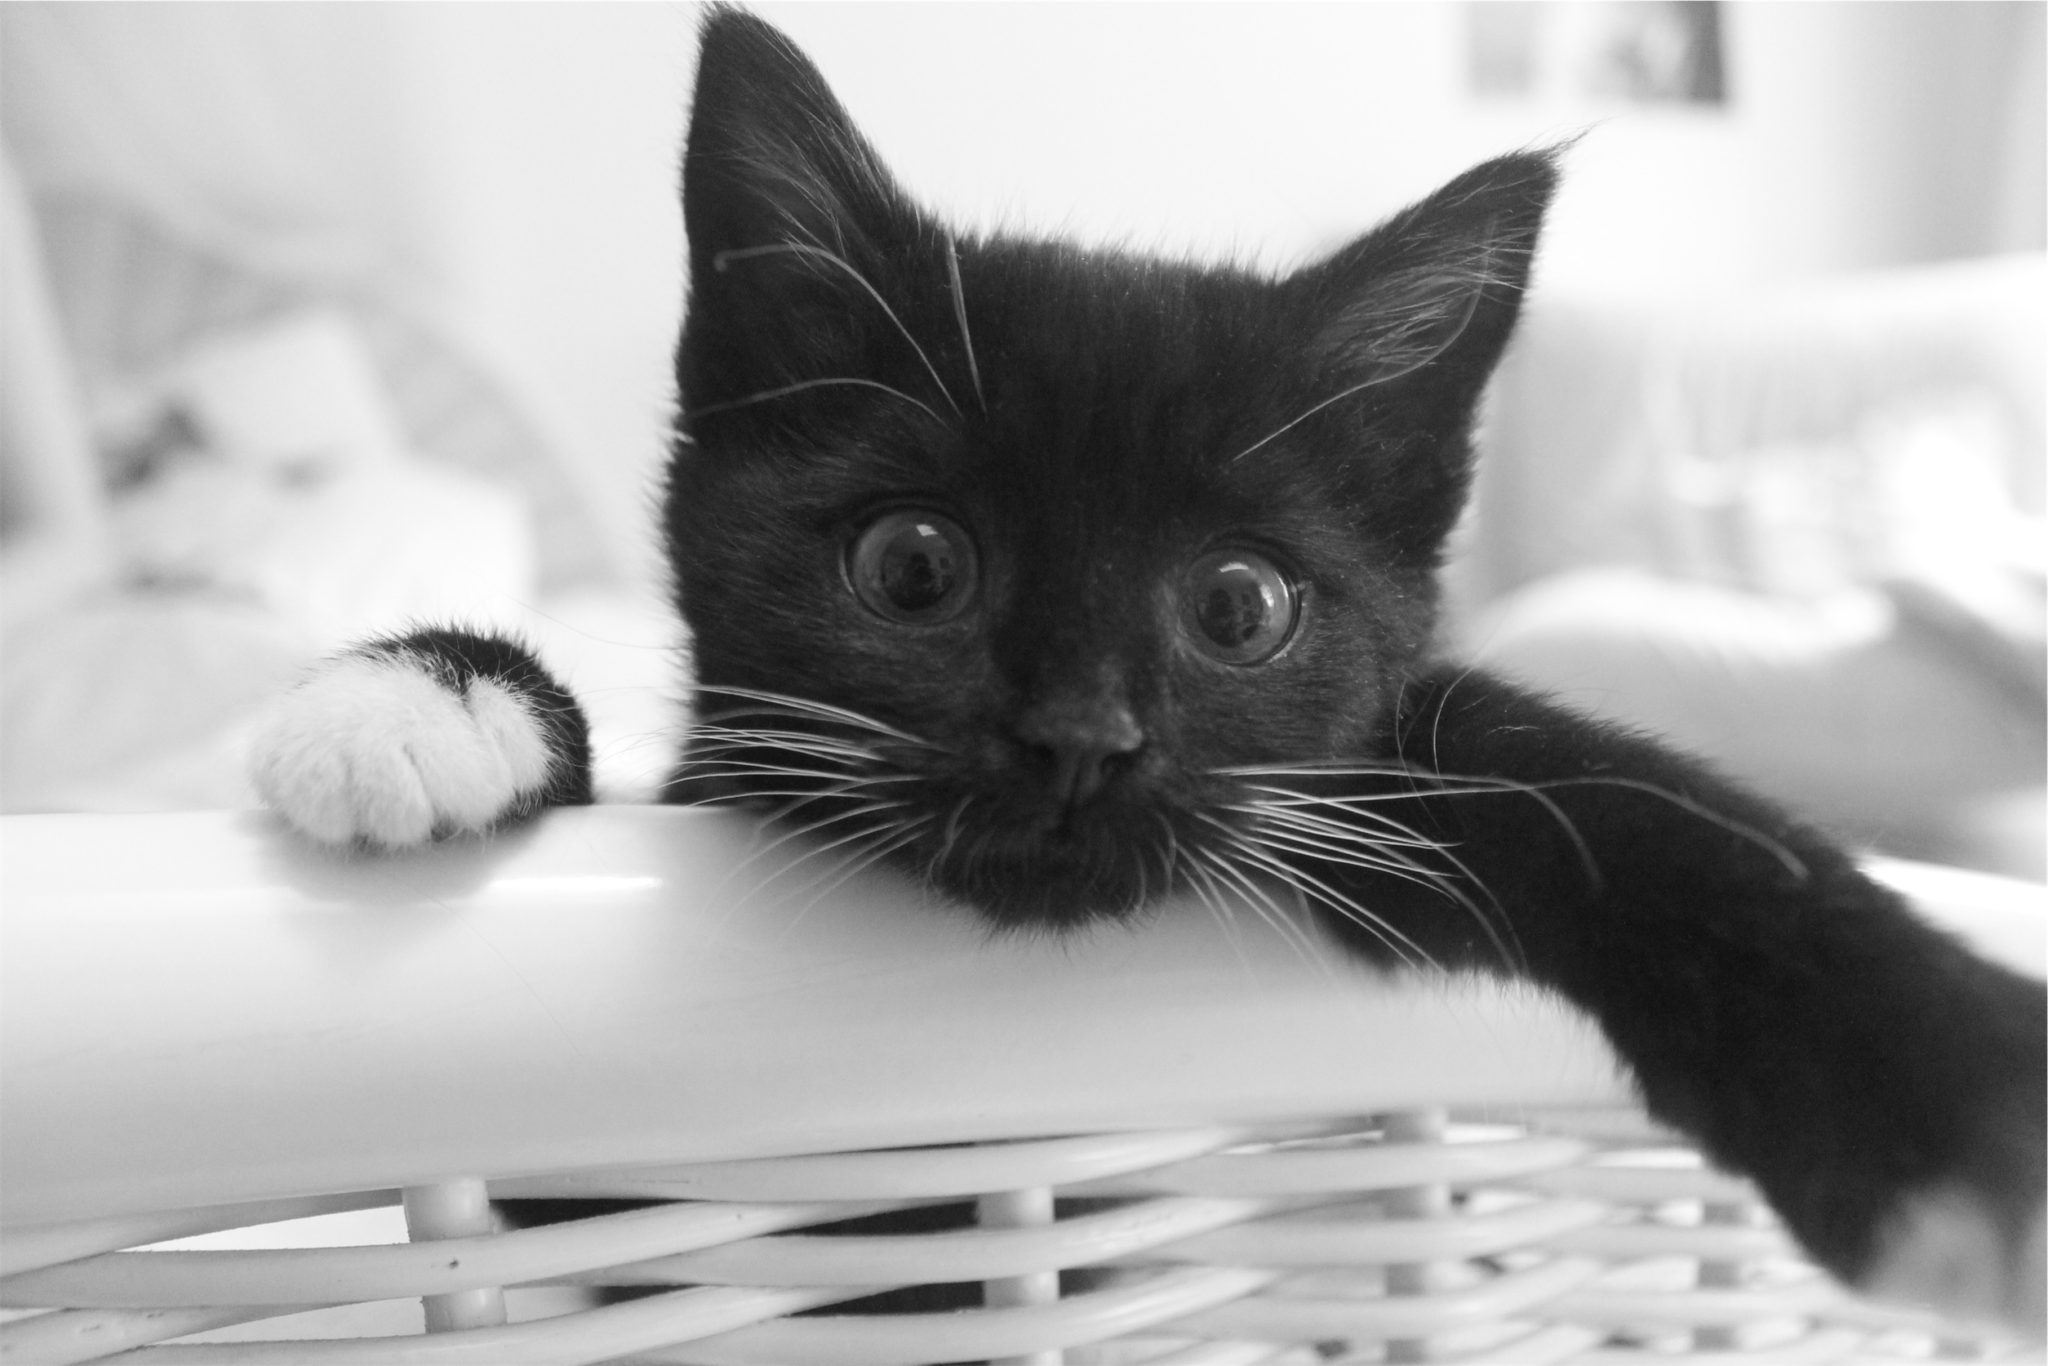 Black kitten in white basket by Maximilian Yachter from stocksnap.io